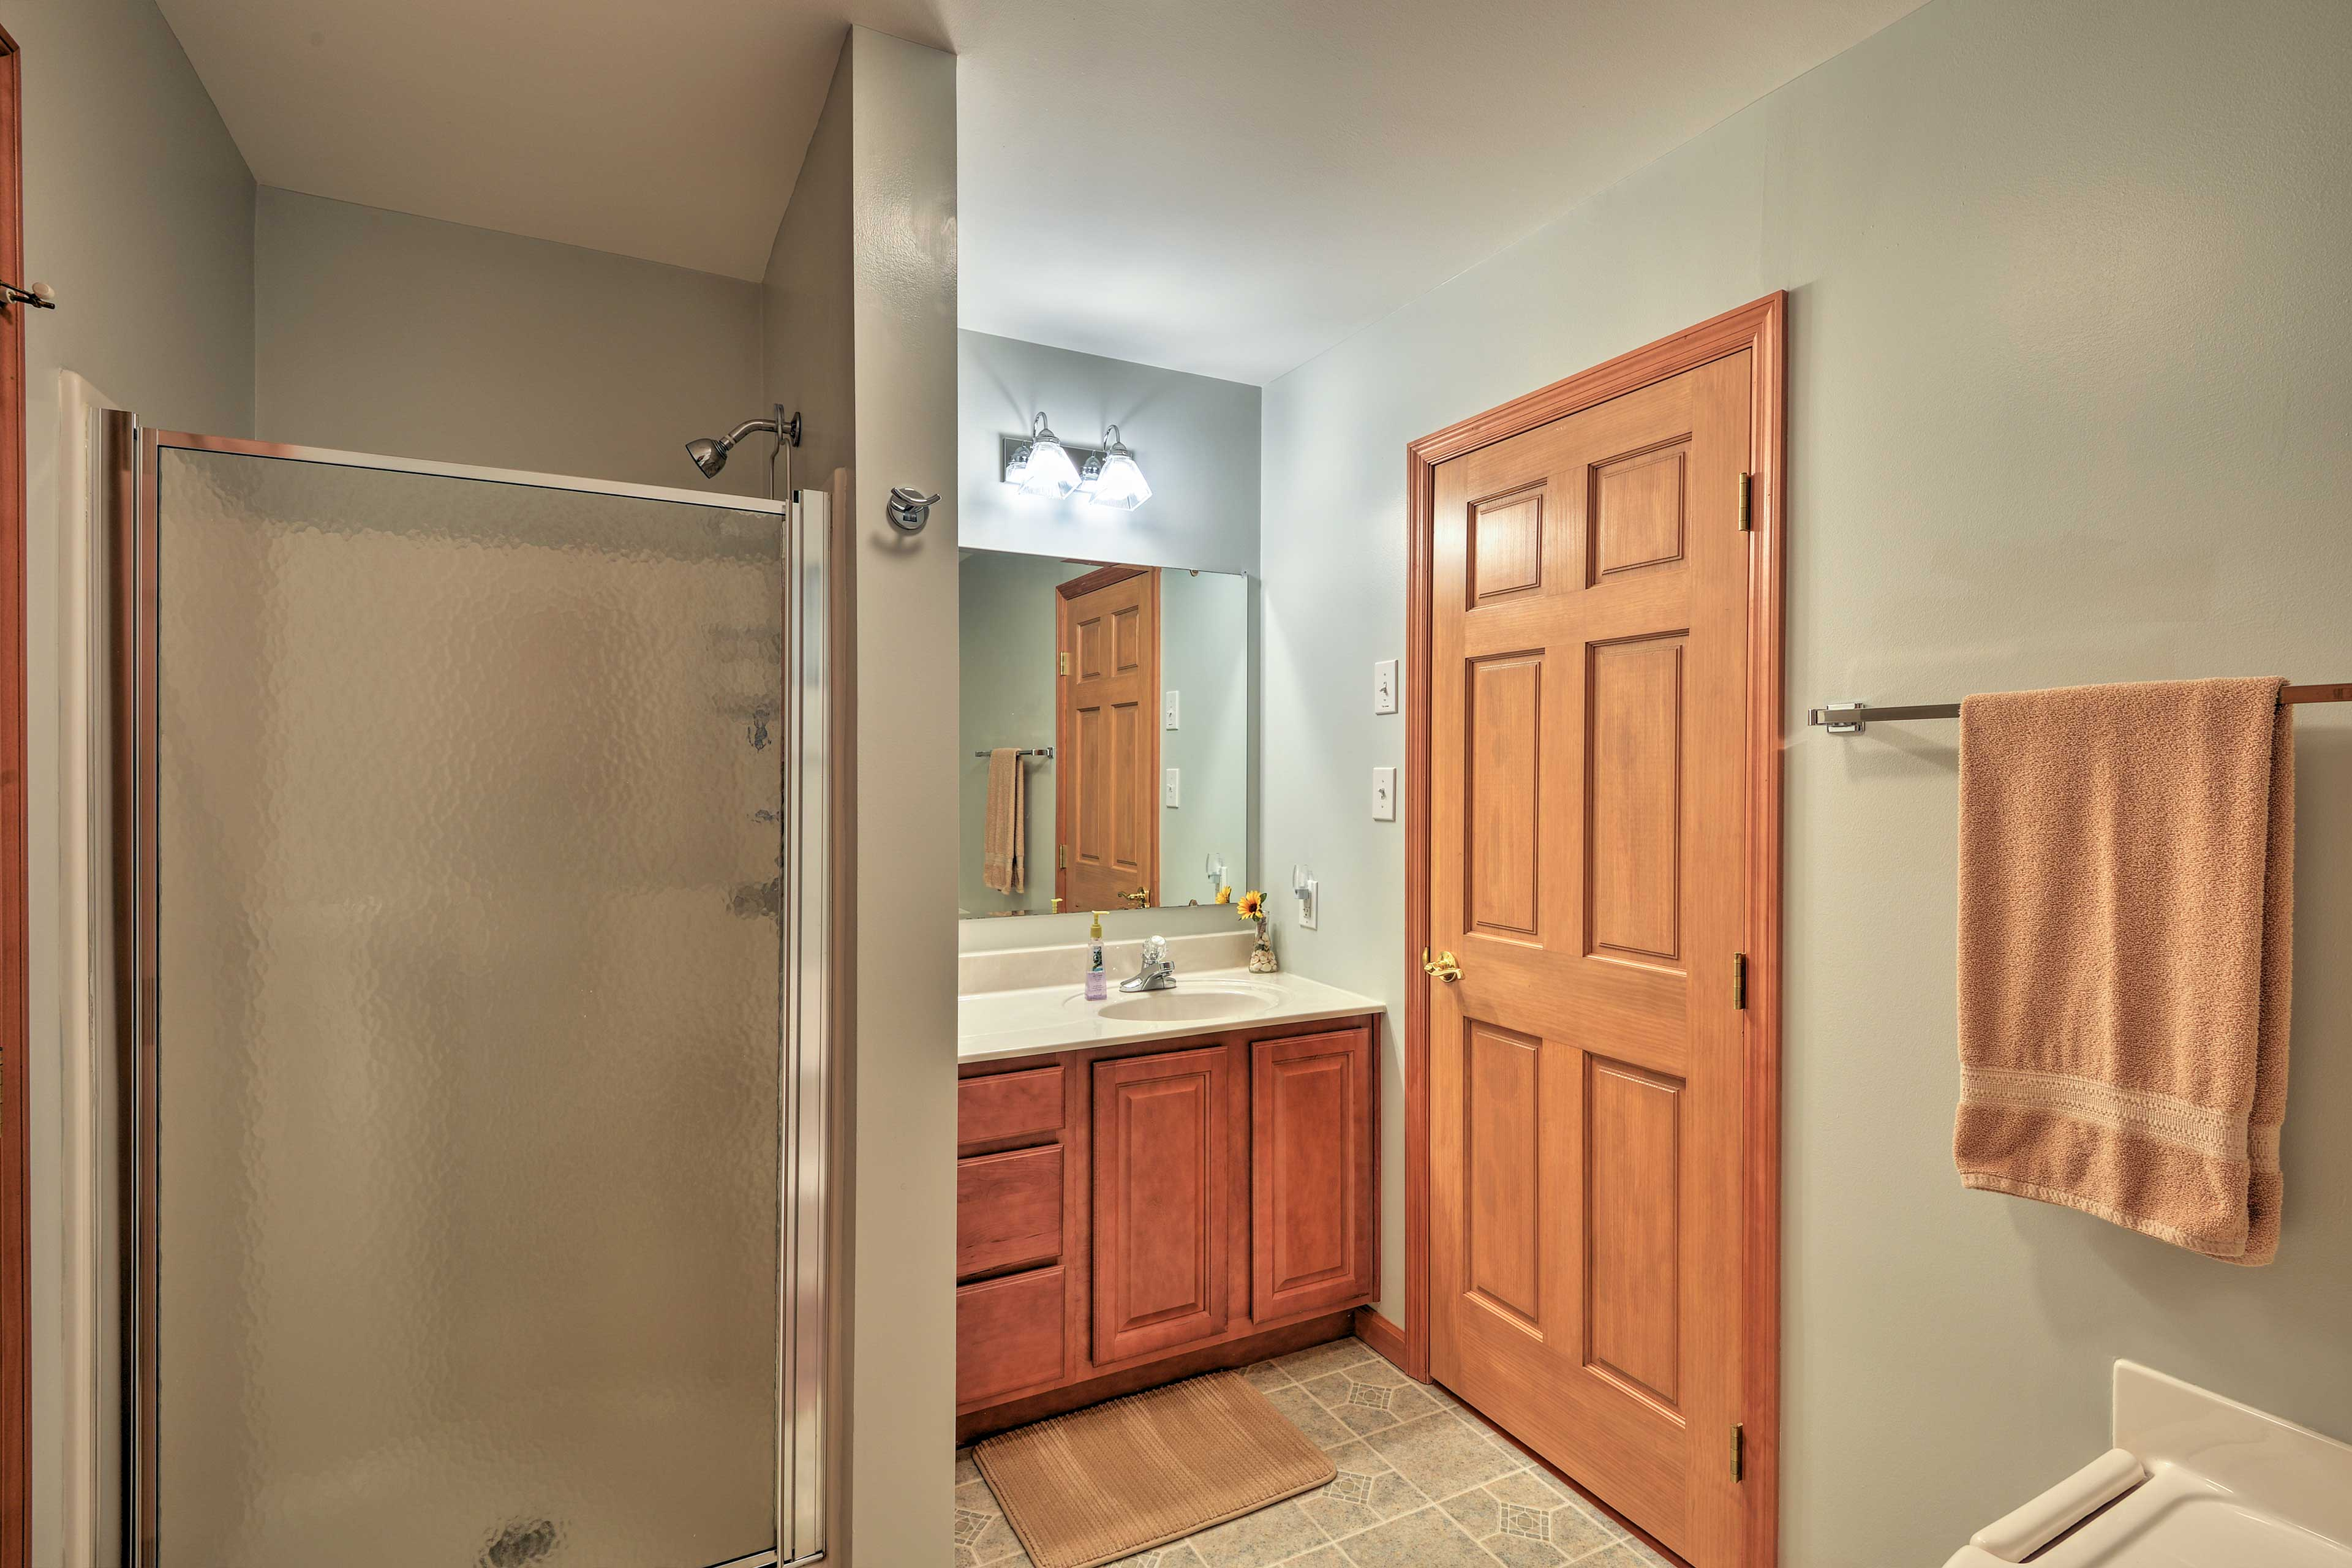 Rinse up before bed in the walk-in shower in the en-suite.